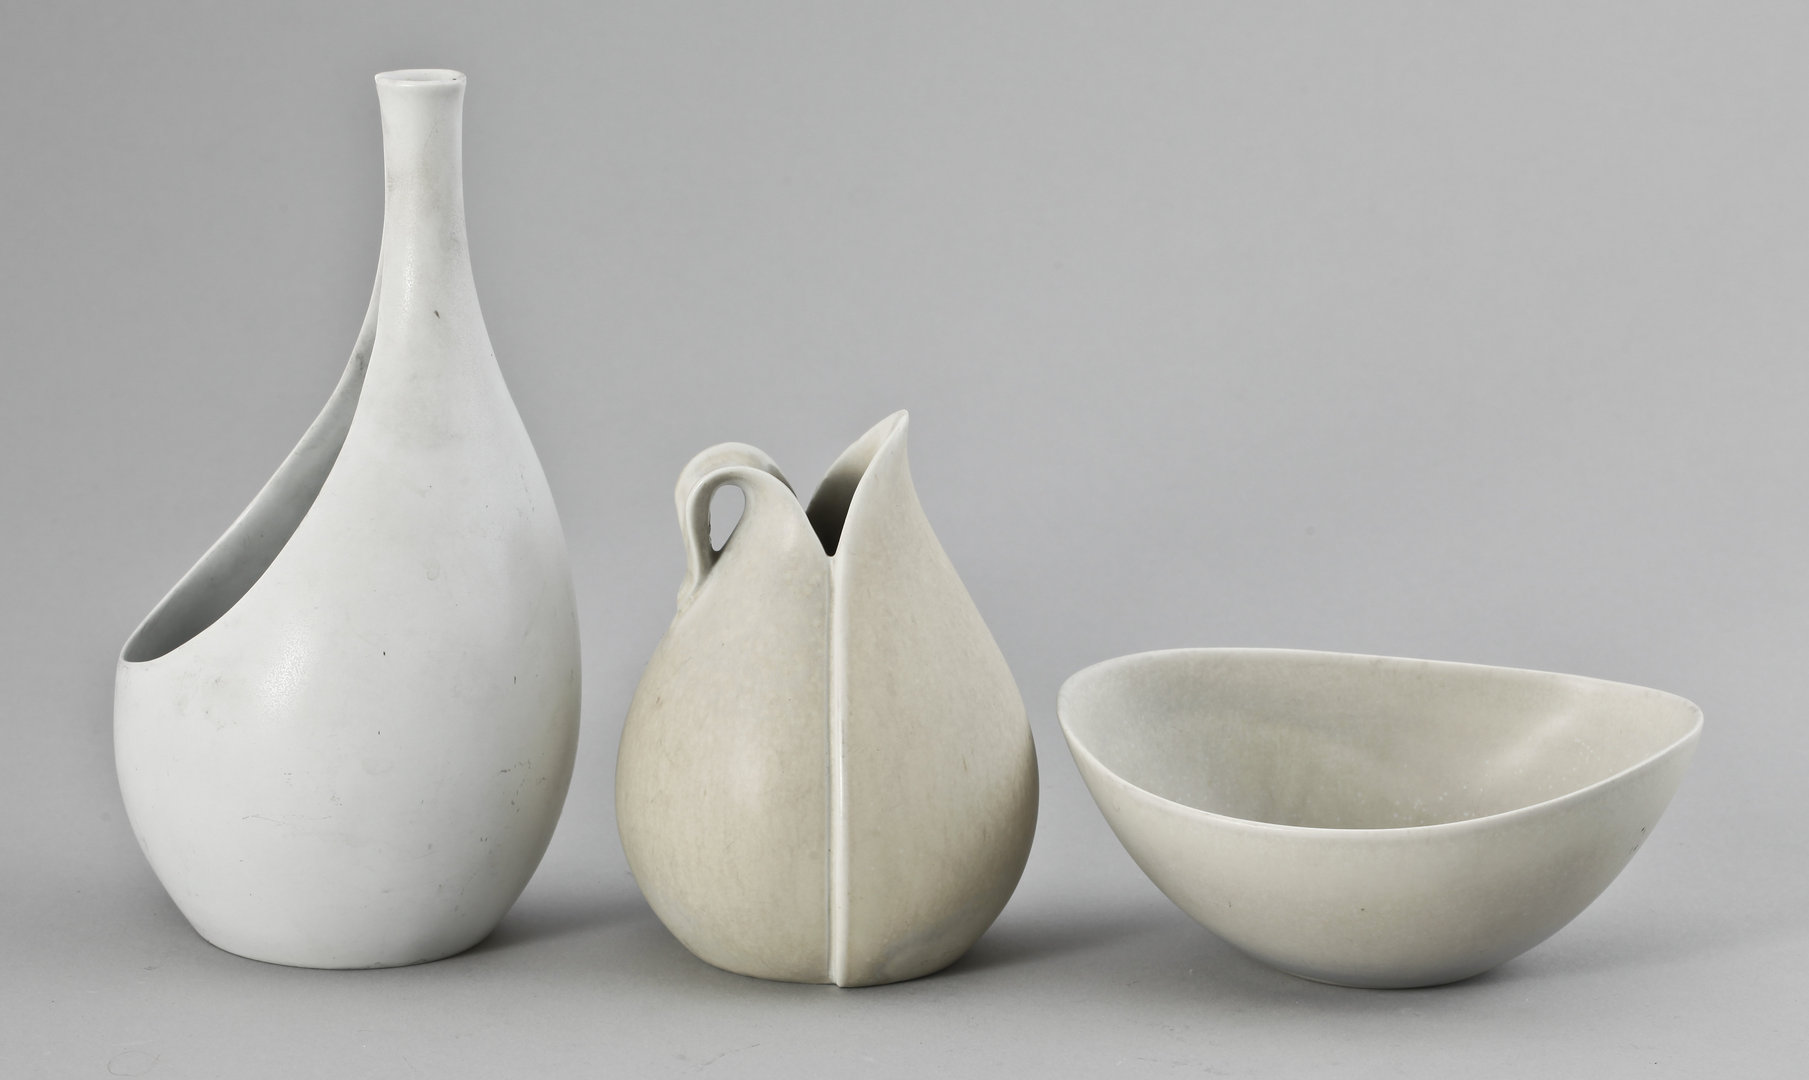 gustavsberg guys Gustavsberg has manufactured porcelain since 1825 although, the gustavsberg history originates from the 1600s, when gustav gabrielsson oxenstierna and his wife, maria de la gardie, founded a brickyard in farsta bay.